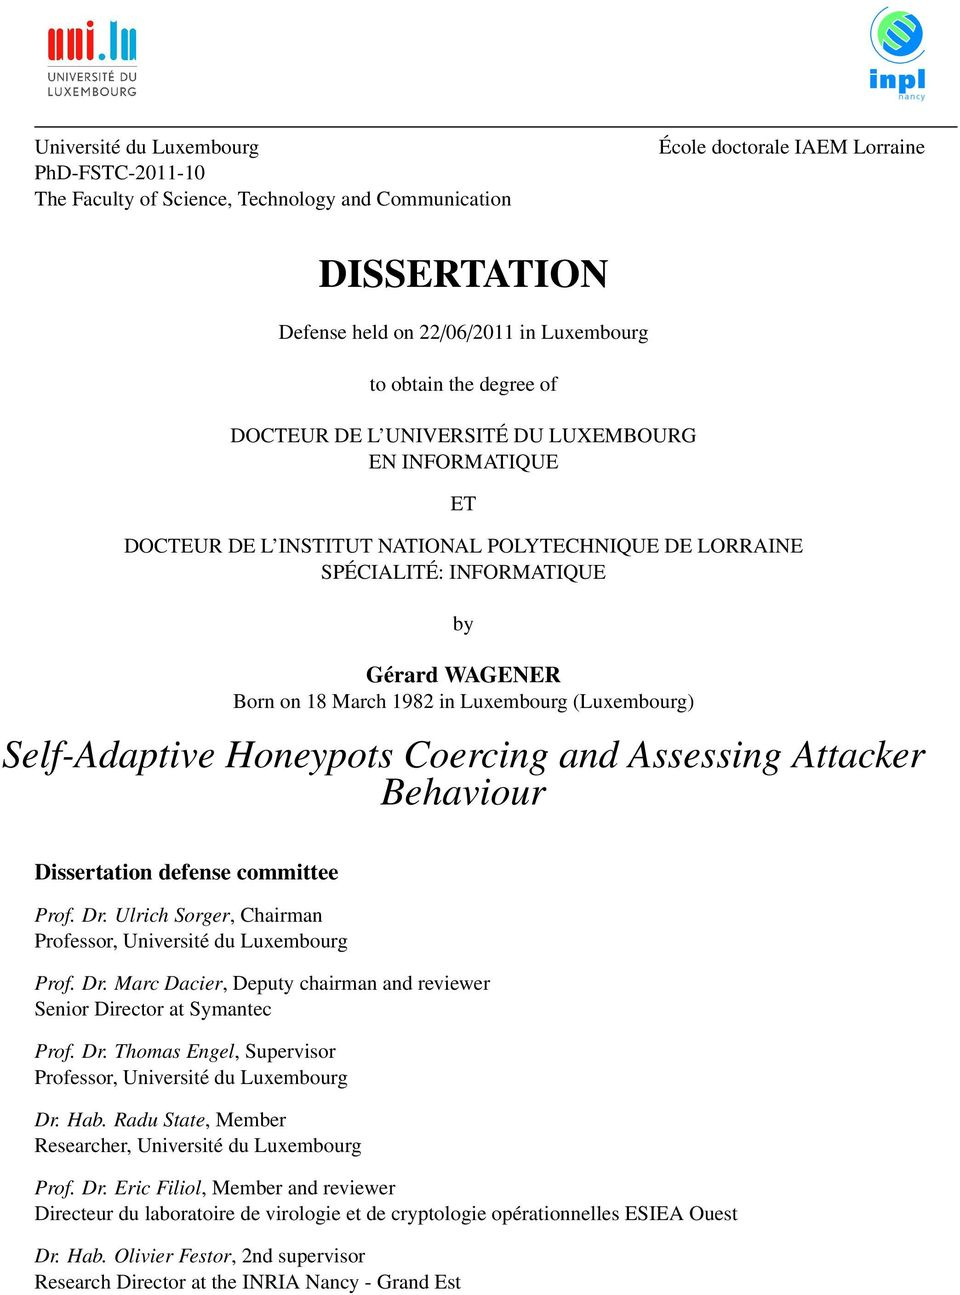 (Luxembourg) Self-Adaptive Honeypots Coercing and Assessing Attacker Behaviour Dissertation defense committee Prof. Dr. Ulrich Sorger, Chairman Professor, Université du Luxembourg Prof. Dr. Marc Dacier, Deputy chairman and reviewer Senior Director at Symantec Prof.